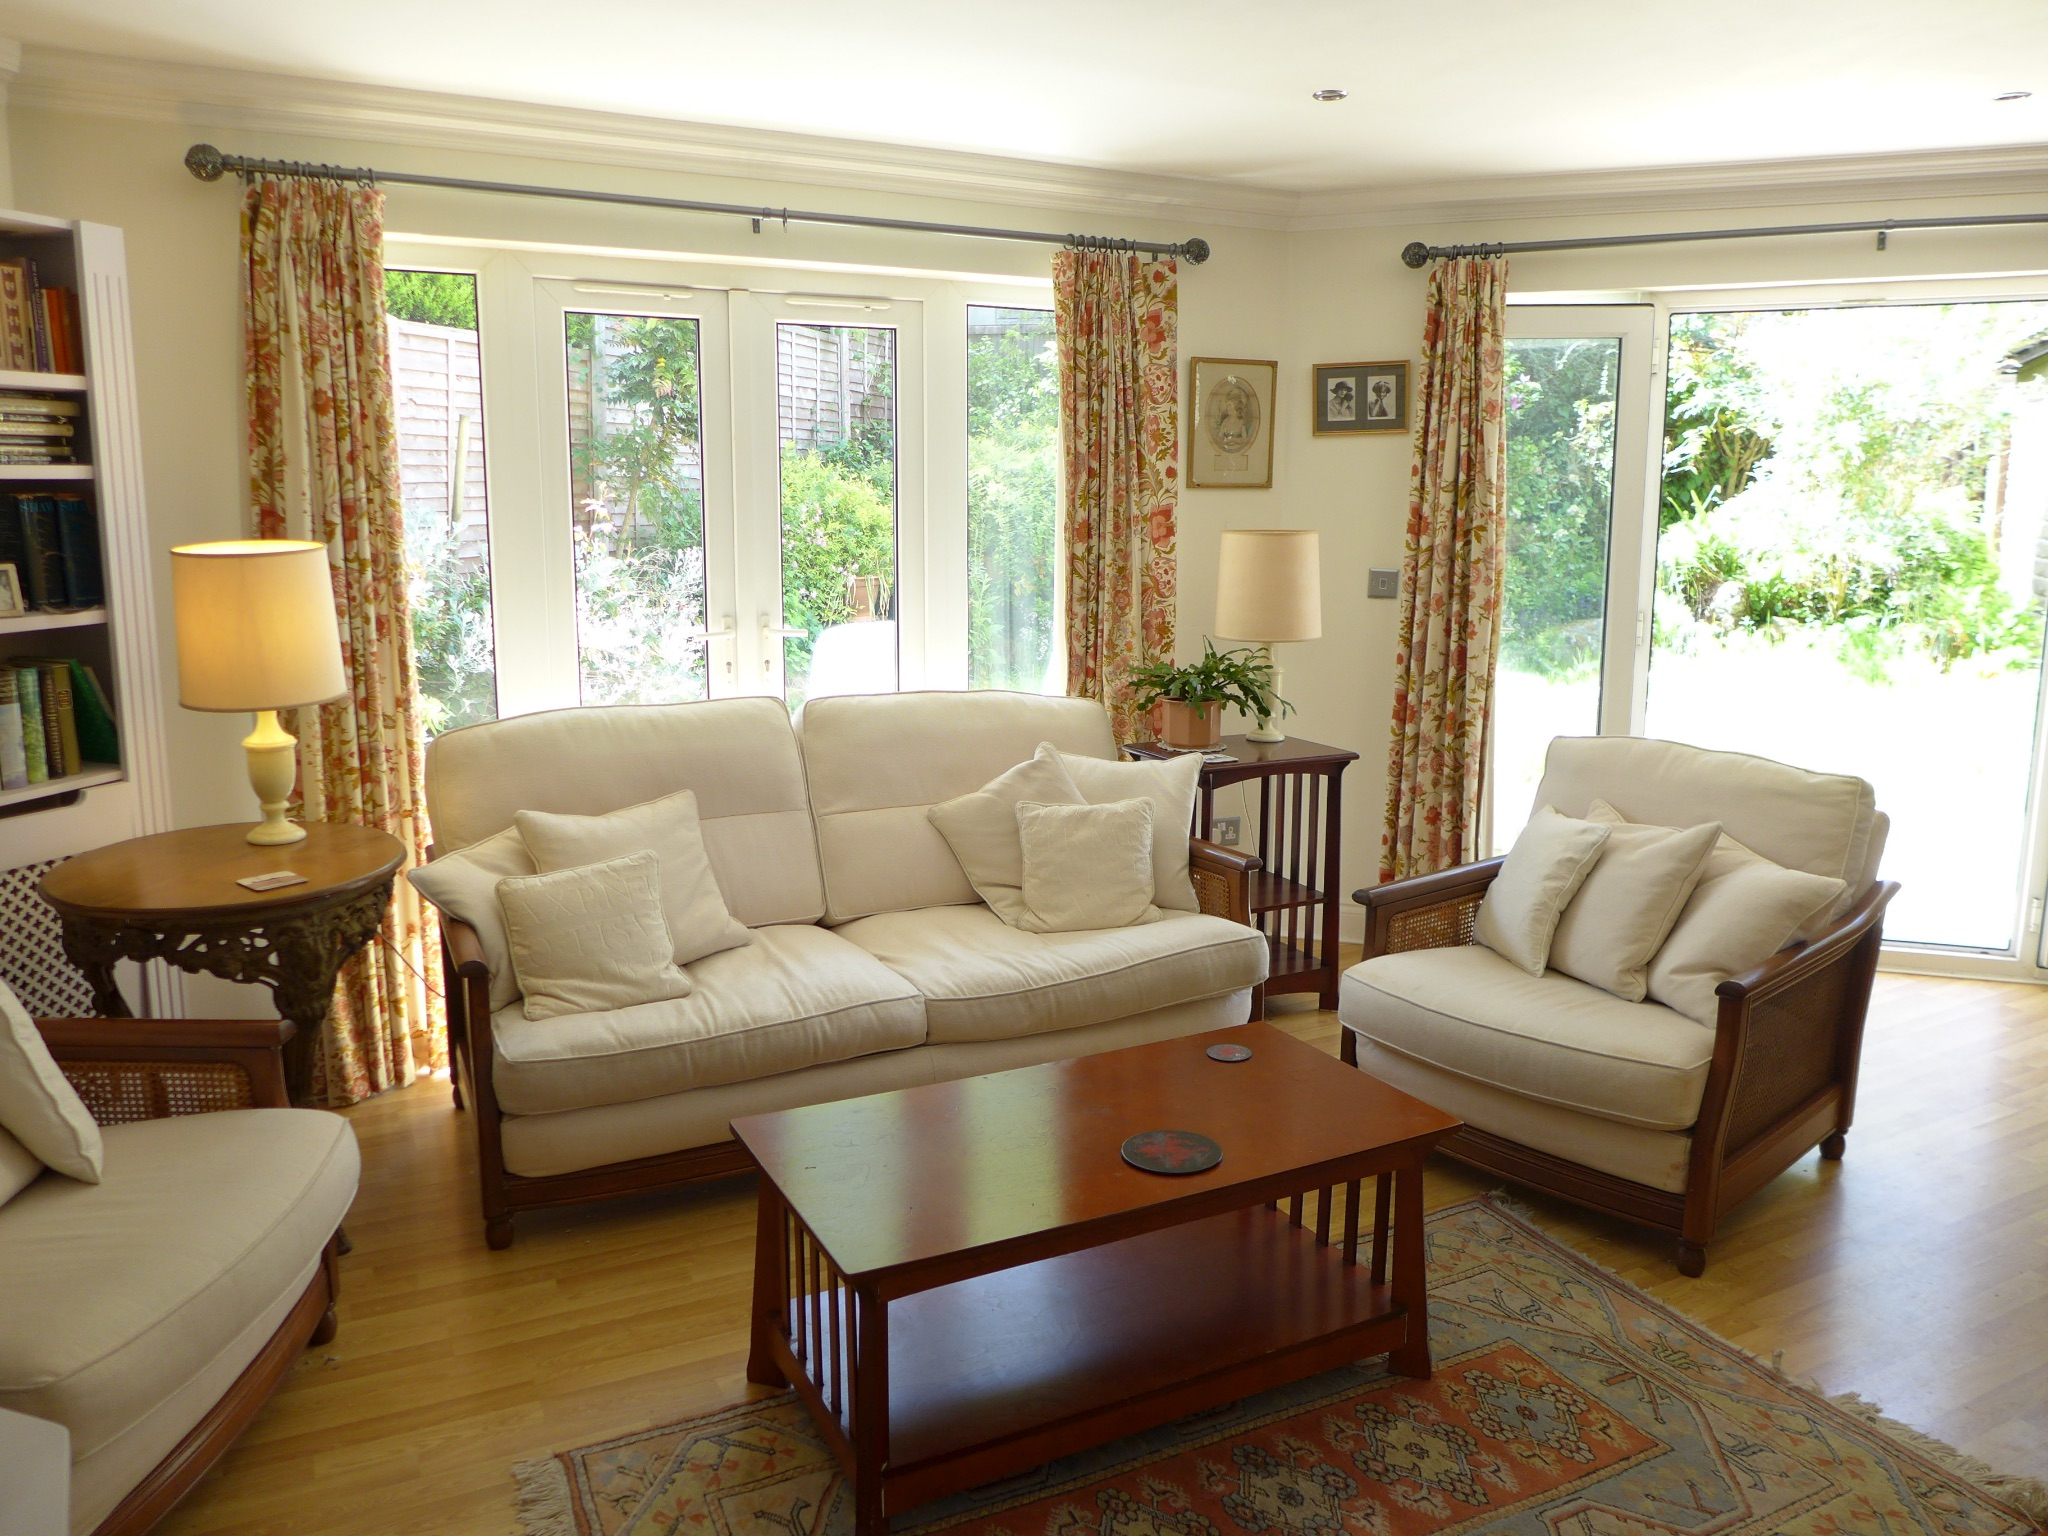 3 bedroom detached house For Sale in Todmorden - Photograph 4.